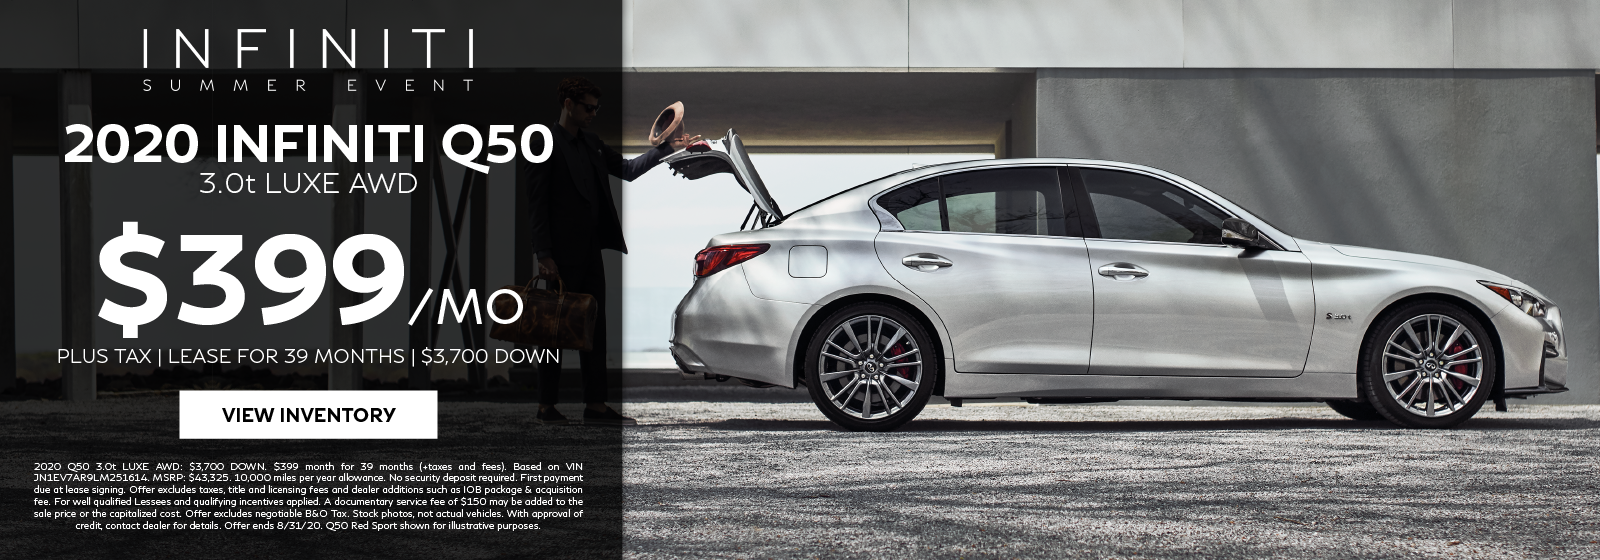 Lease a 2020 Q50 3.0t LUXE AWD for $399 per month for 39 months. Click to view inventory.